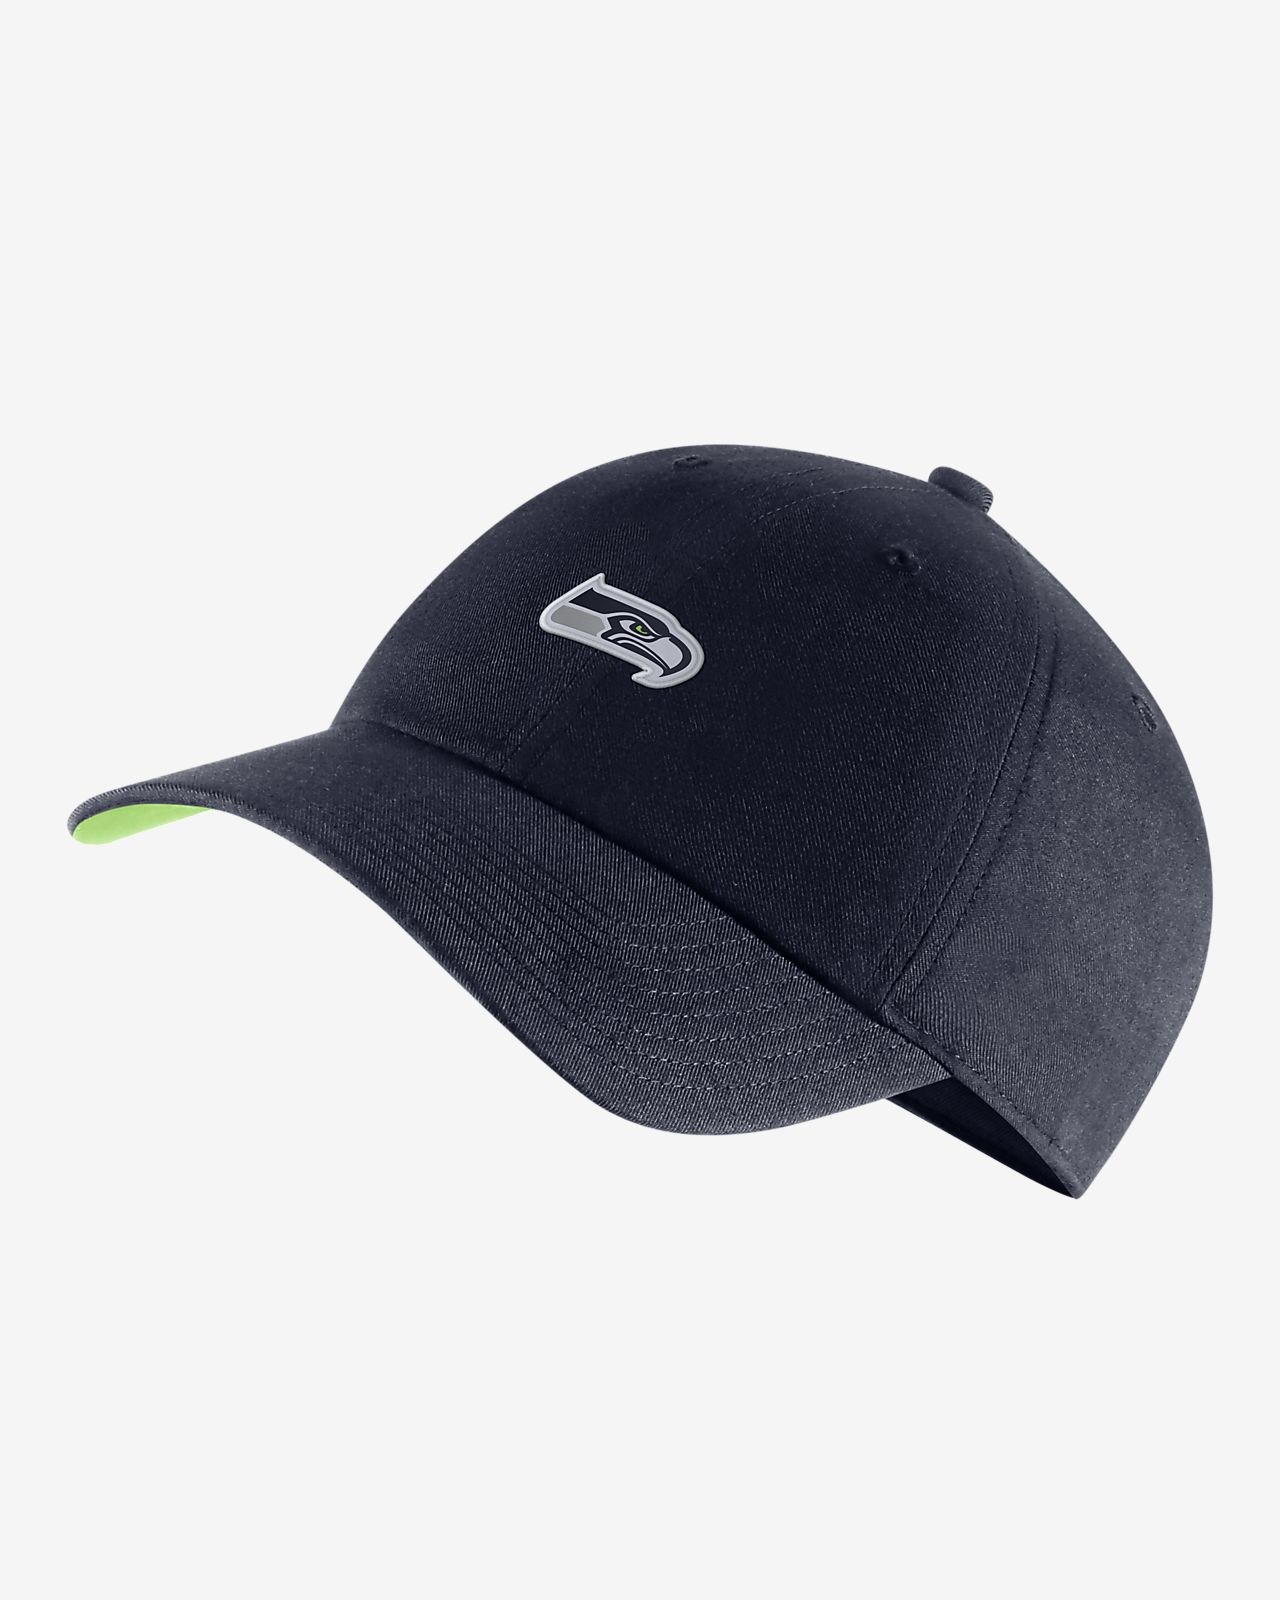 Nike Heritage86 (NFL Seahawks) Adjustable Hat